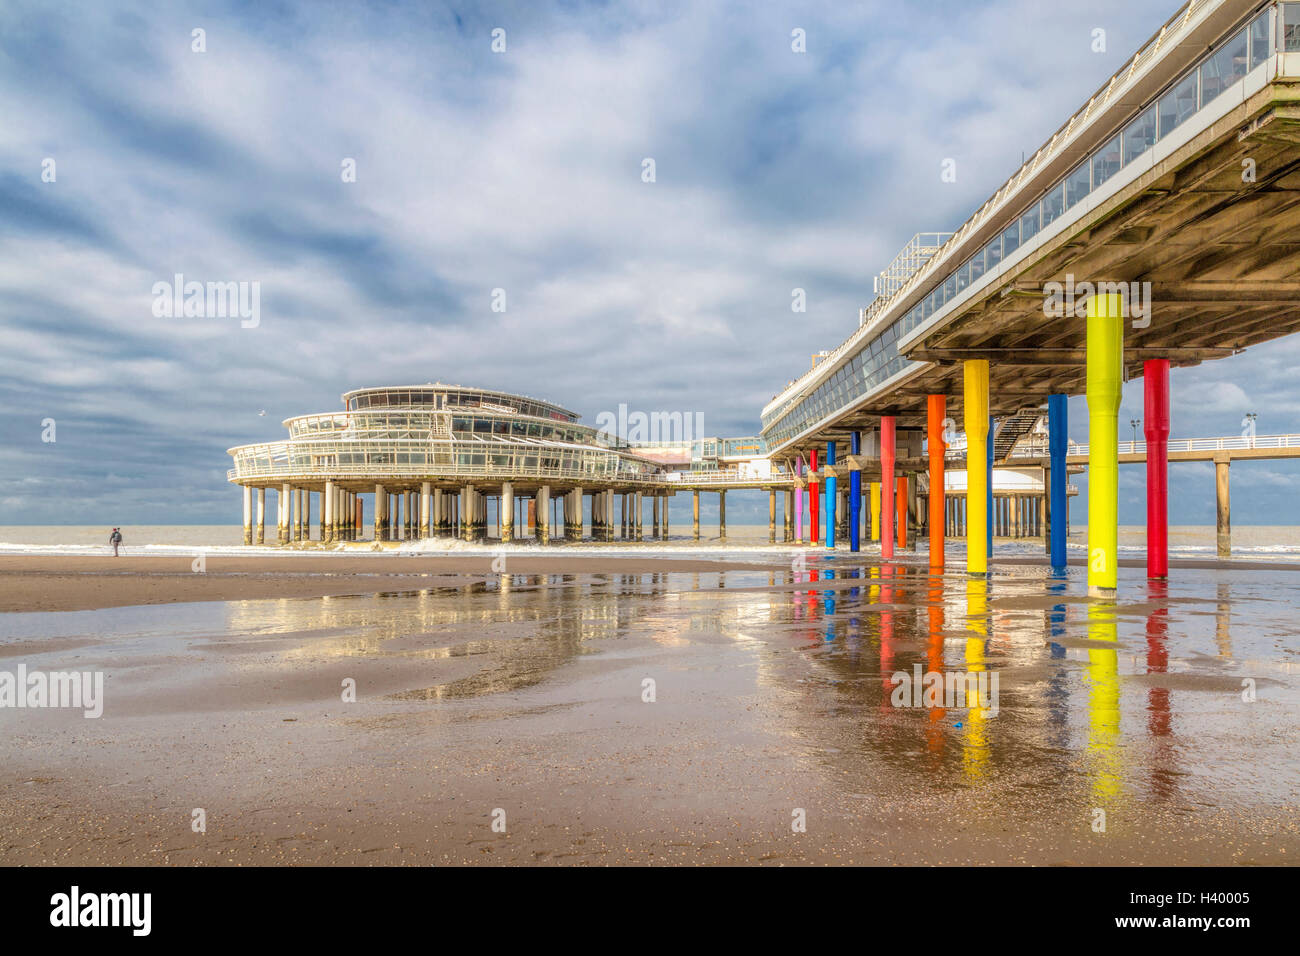 Beach and Pier of Scheveningen, Den Haag, The Hague, on the Dutch North Sea coast, South Holland, The Netherlands, Stock Photo